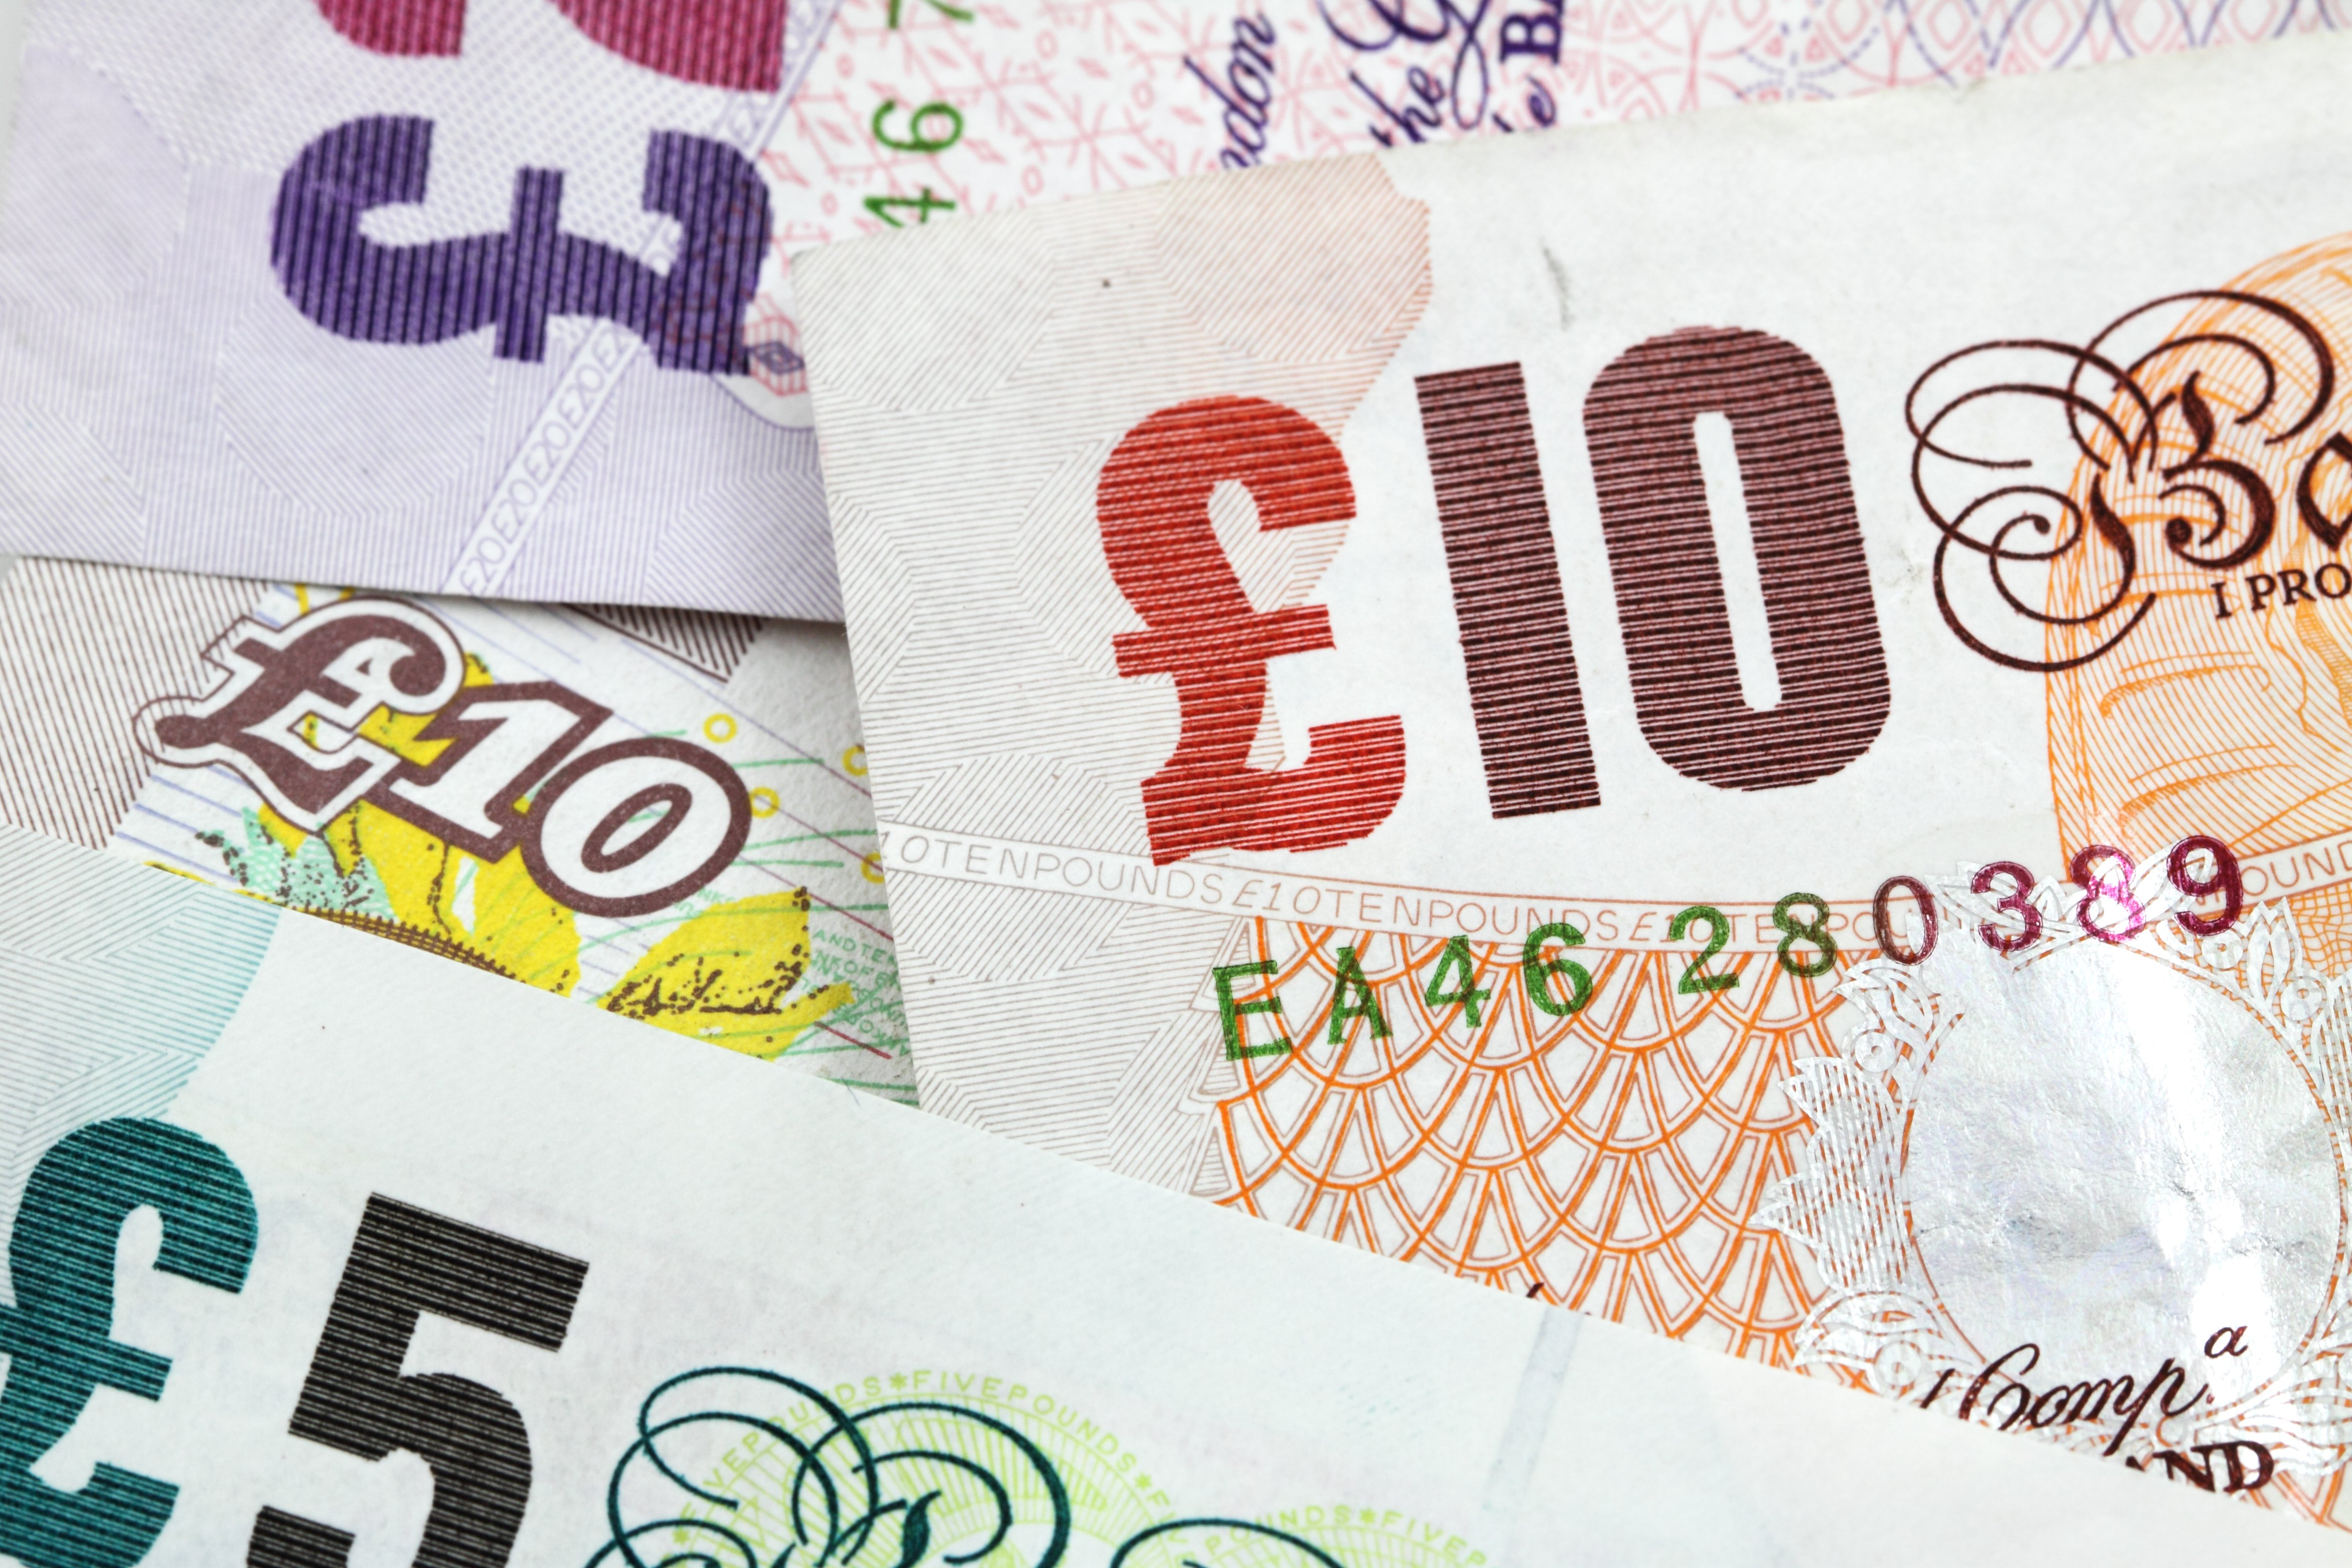 What does Brexit mean for the British pound vs Australian dollar?